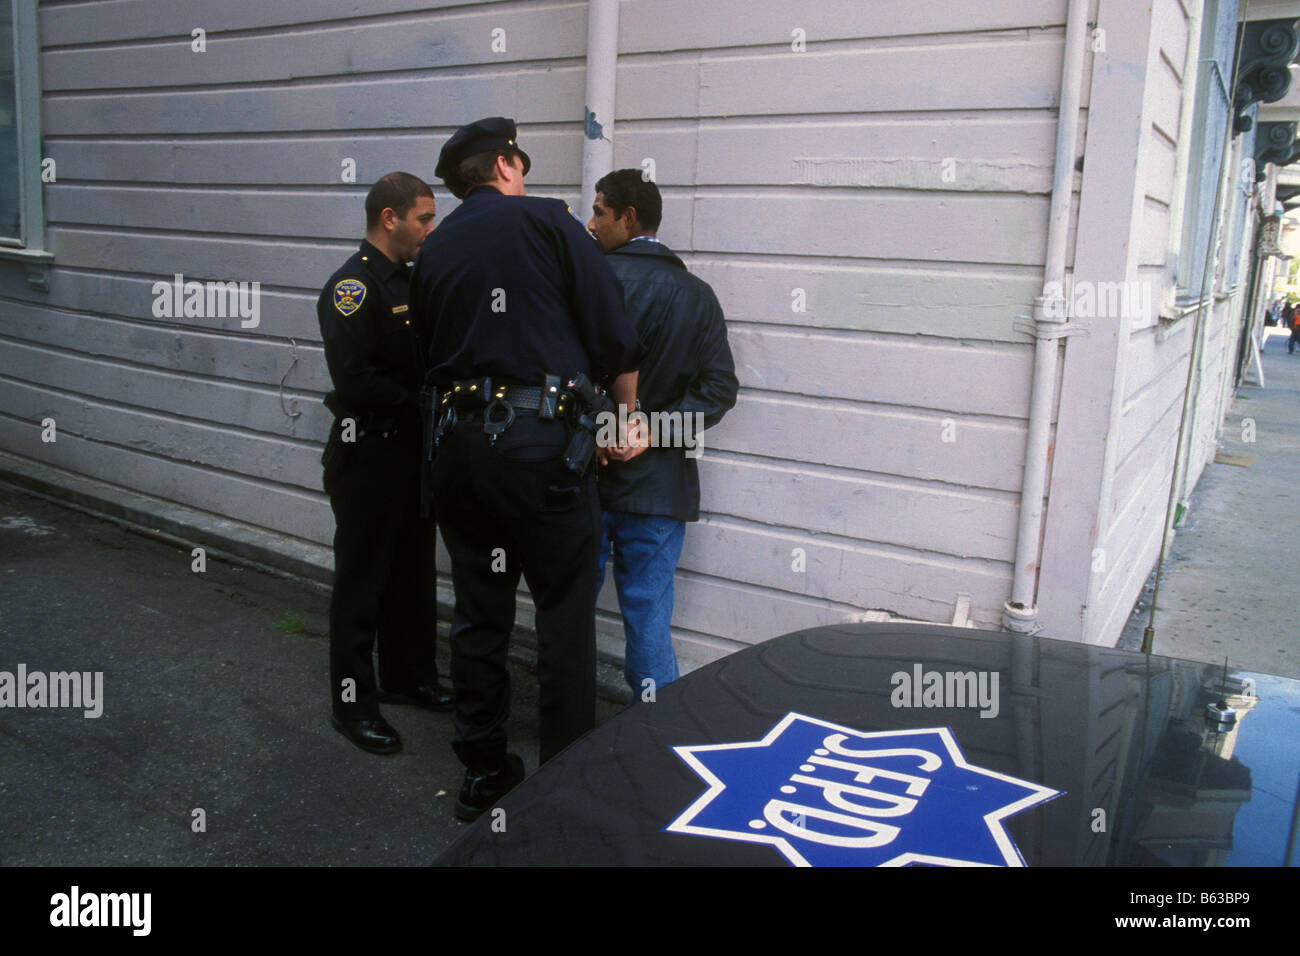 Cops in San Francisco stop and search a man in a side alley - Stock Image